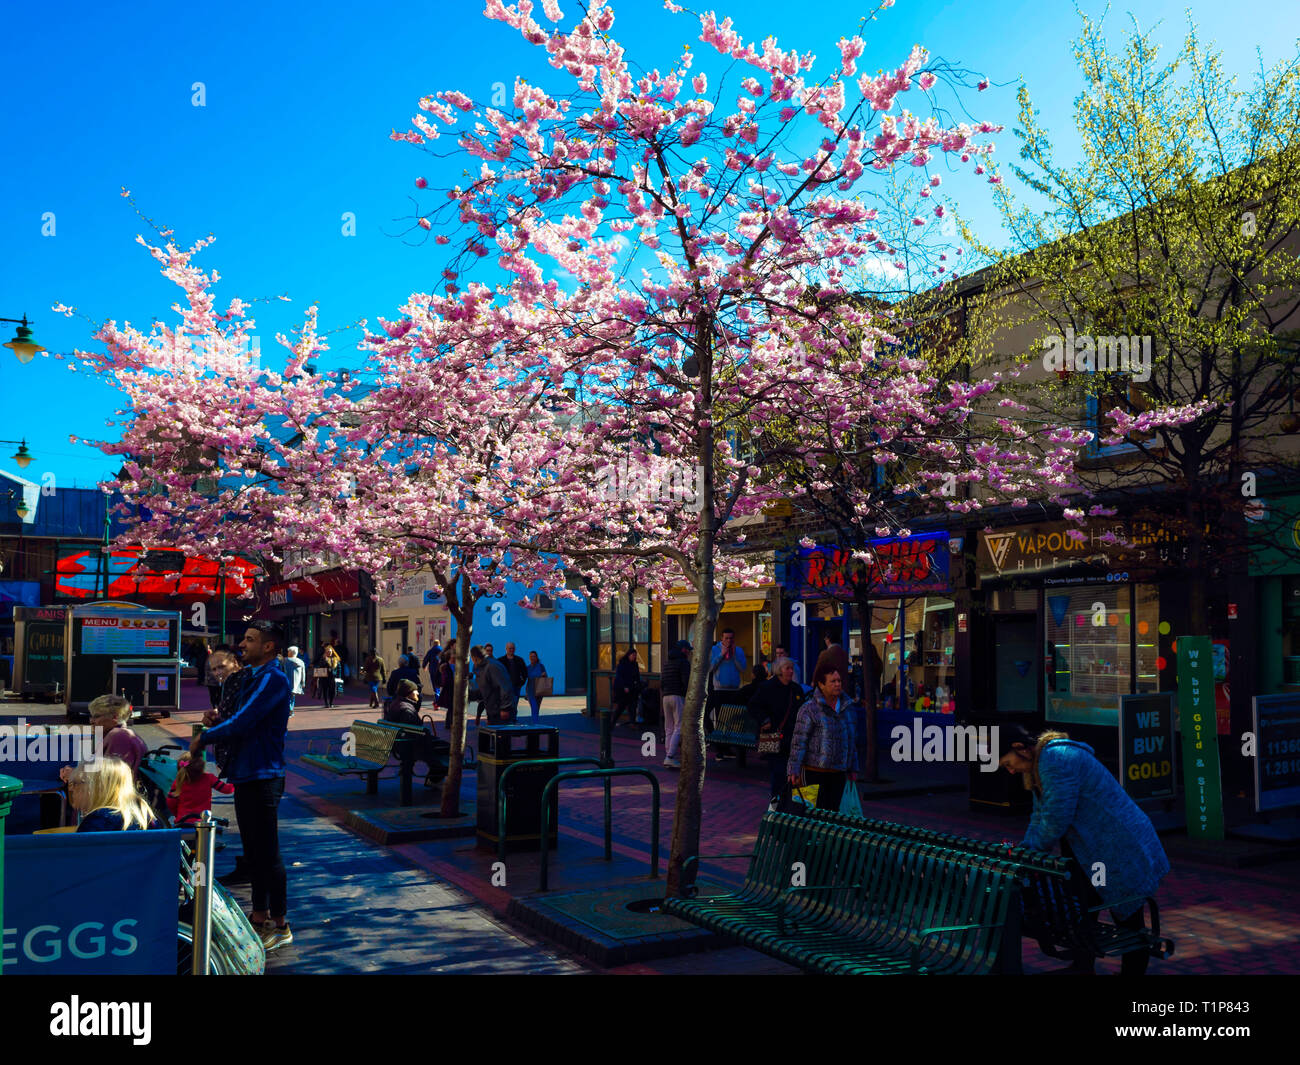 Gilkes street in Middlesbrough town centre with cherry blossom flowering in spring Stock Photo